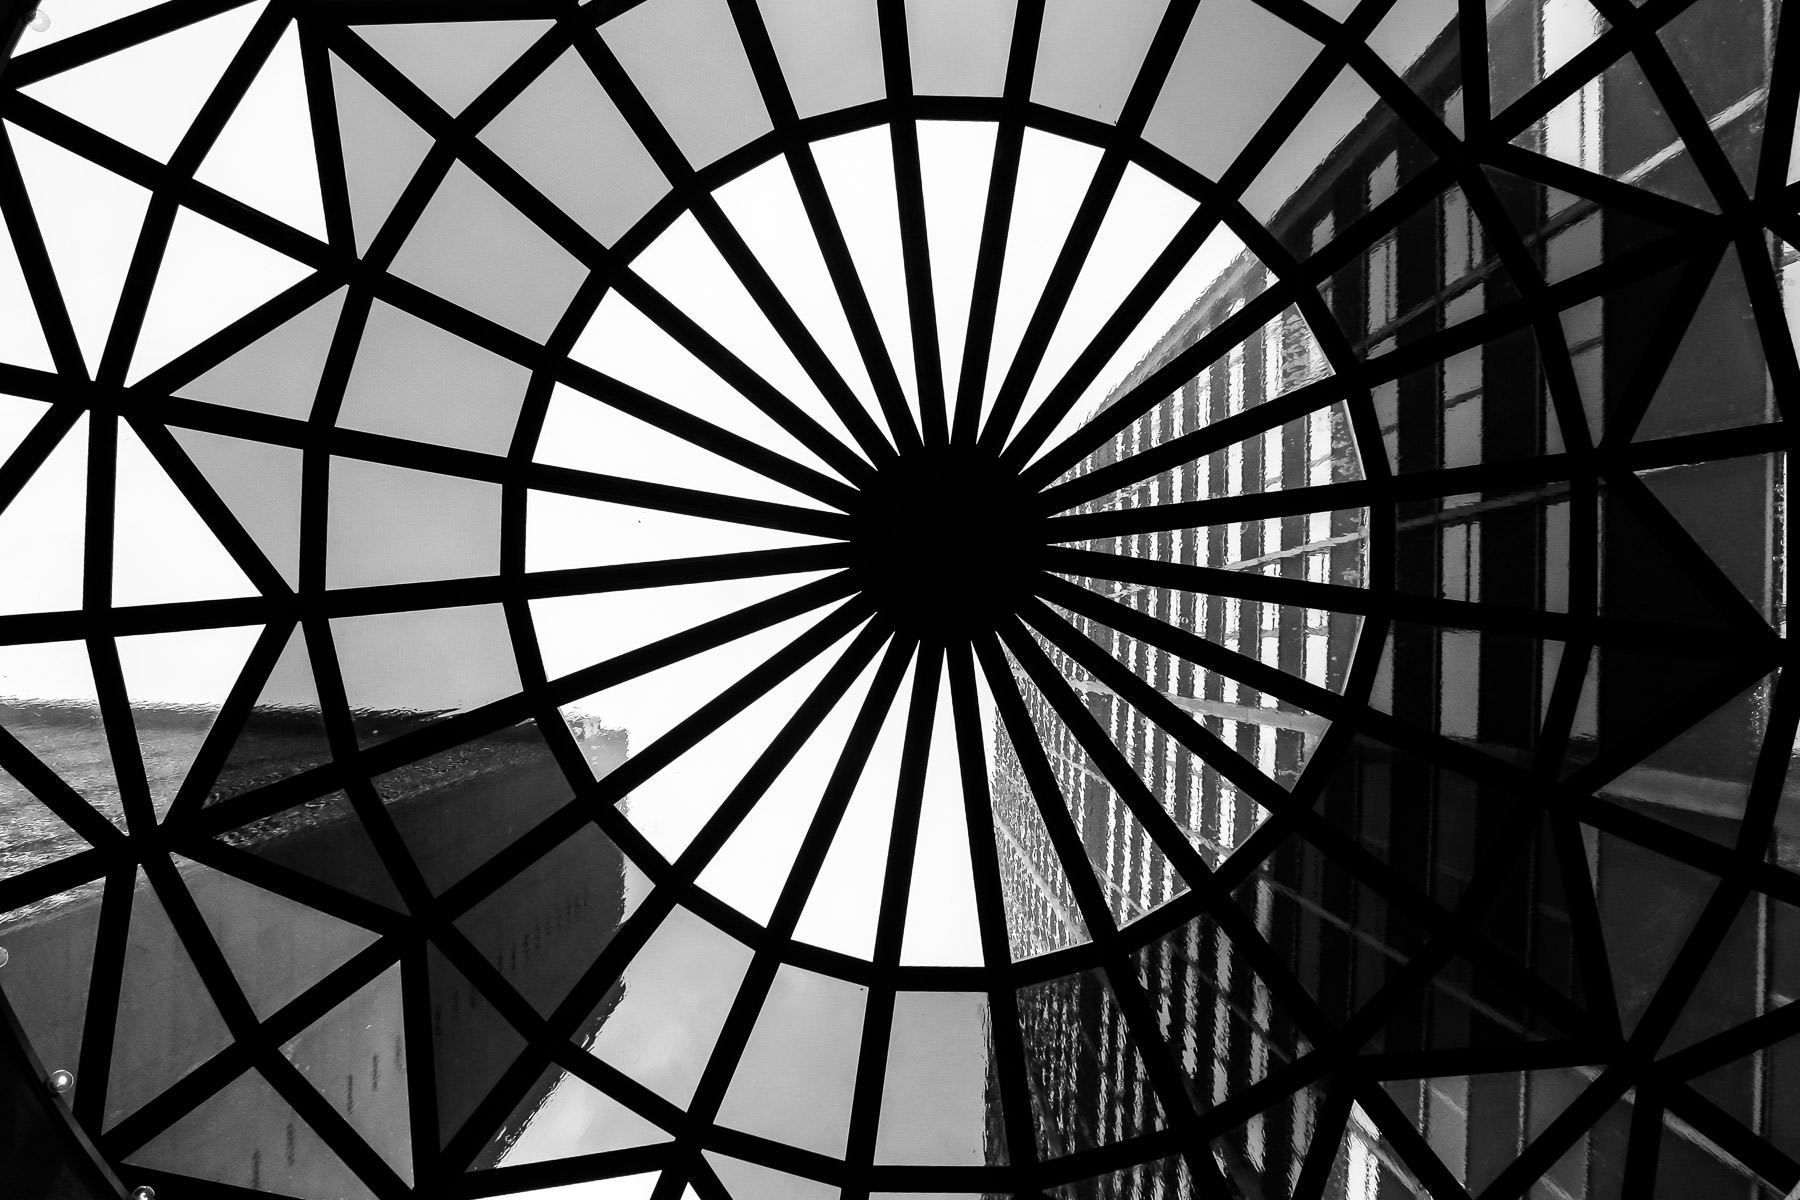 Through the skylight of the portico at the Sheraton Hotel in Downtown Dallas on a rainy Saturday.